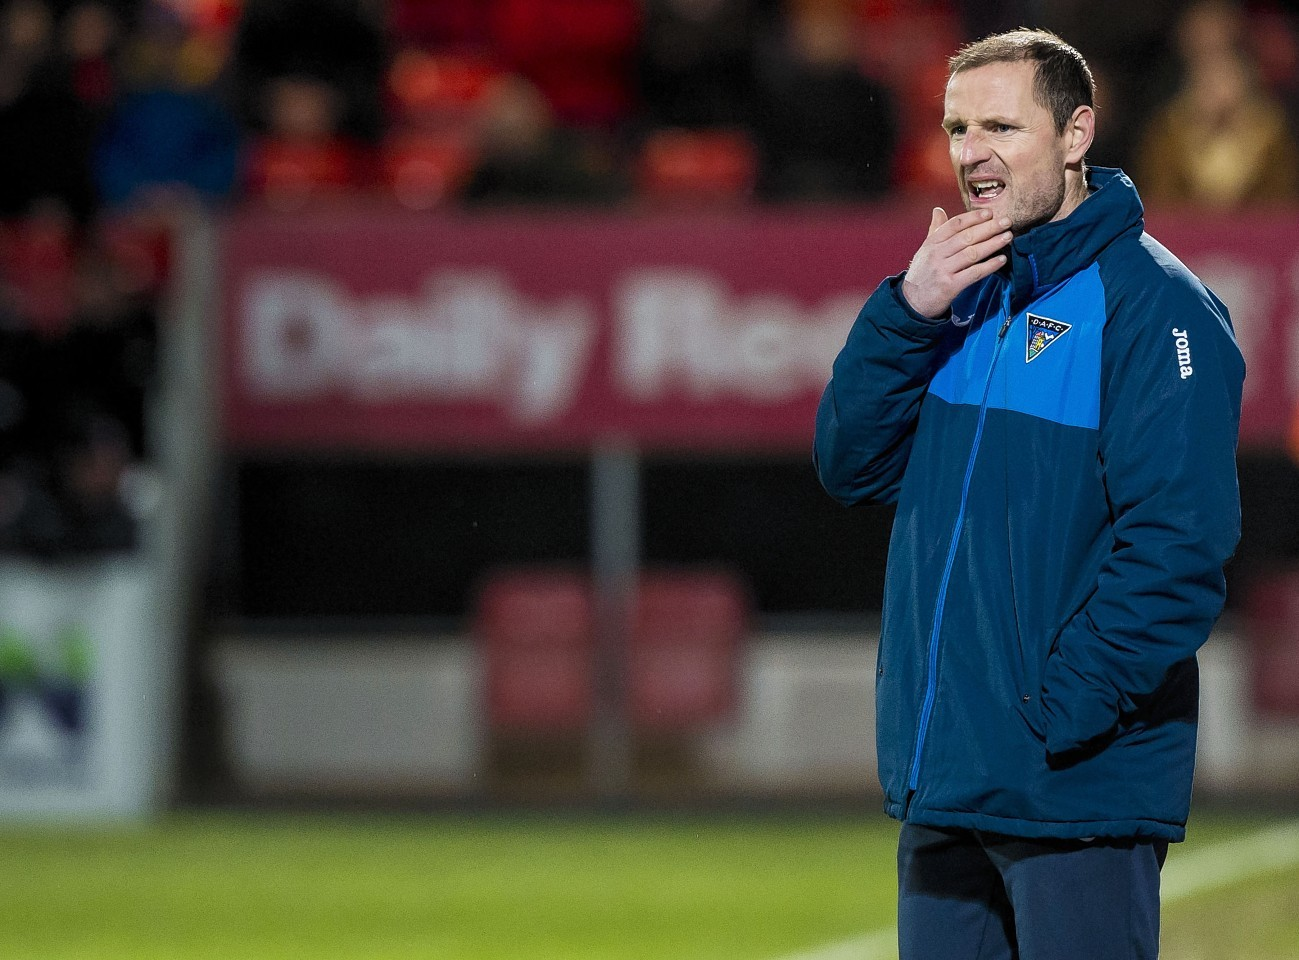 Dunfermline manager Allan Johnston watches on in Dingwall